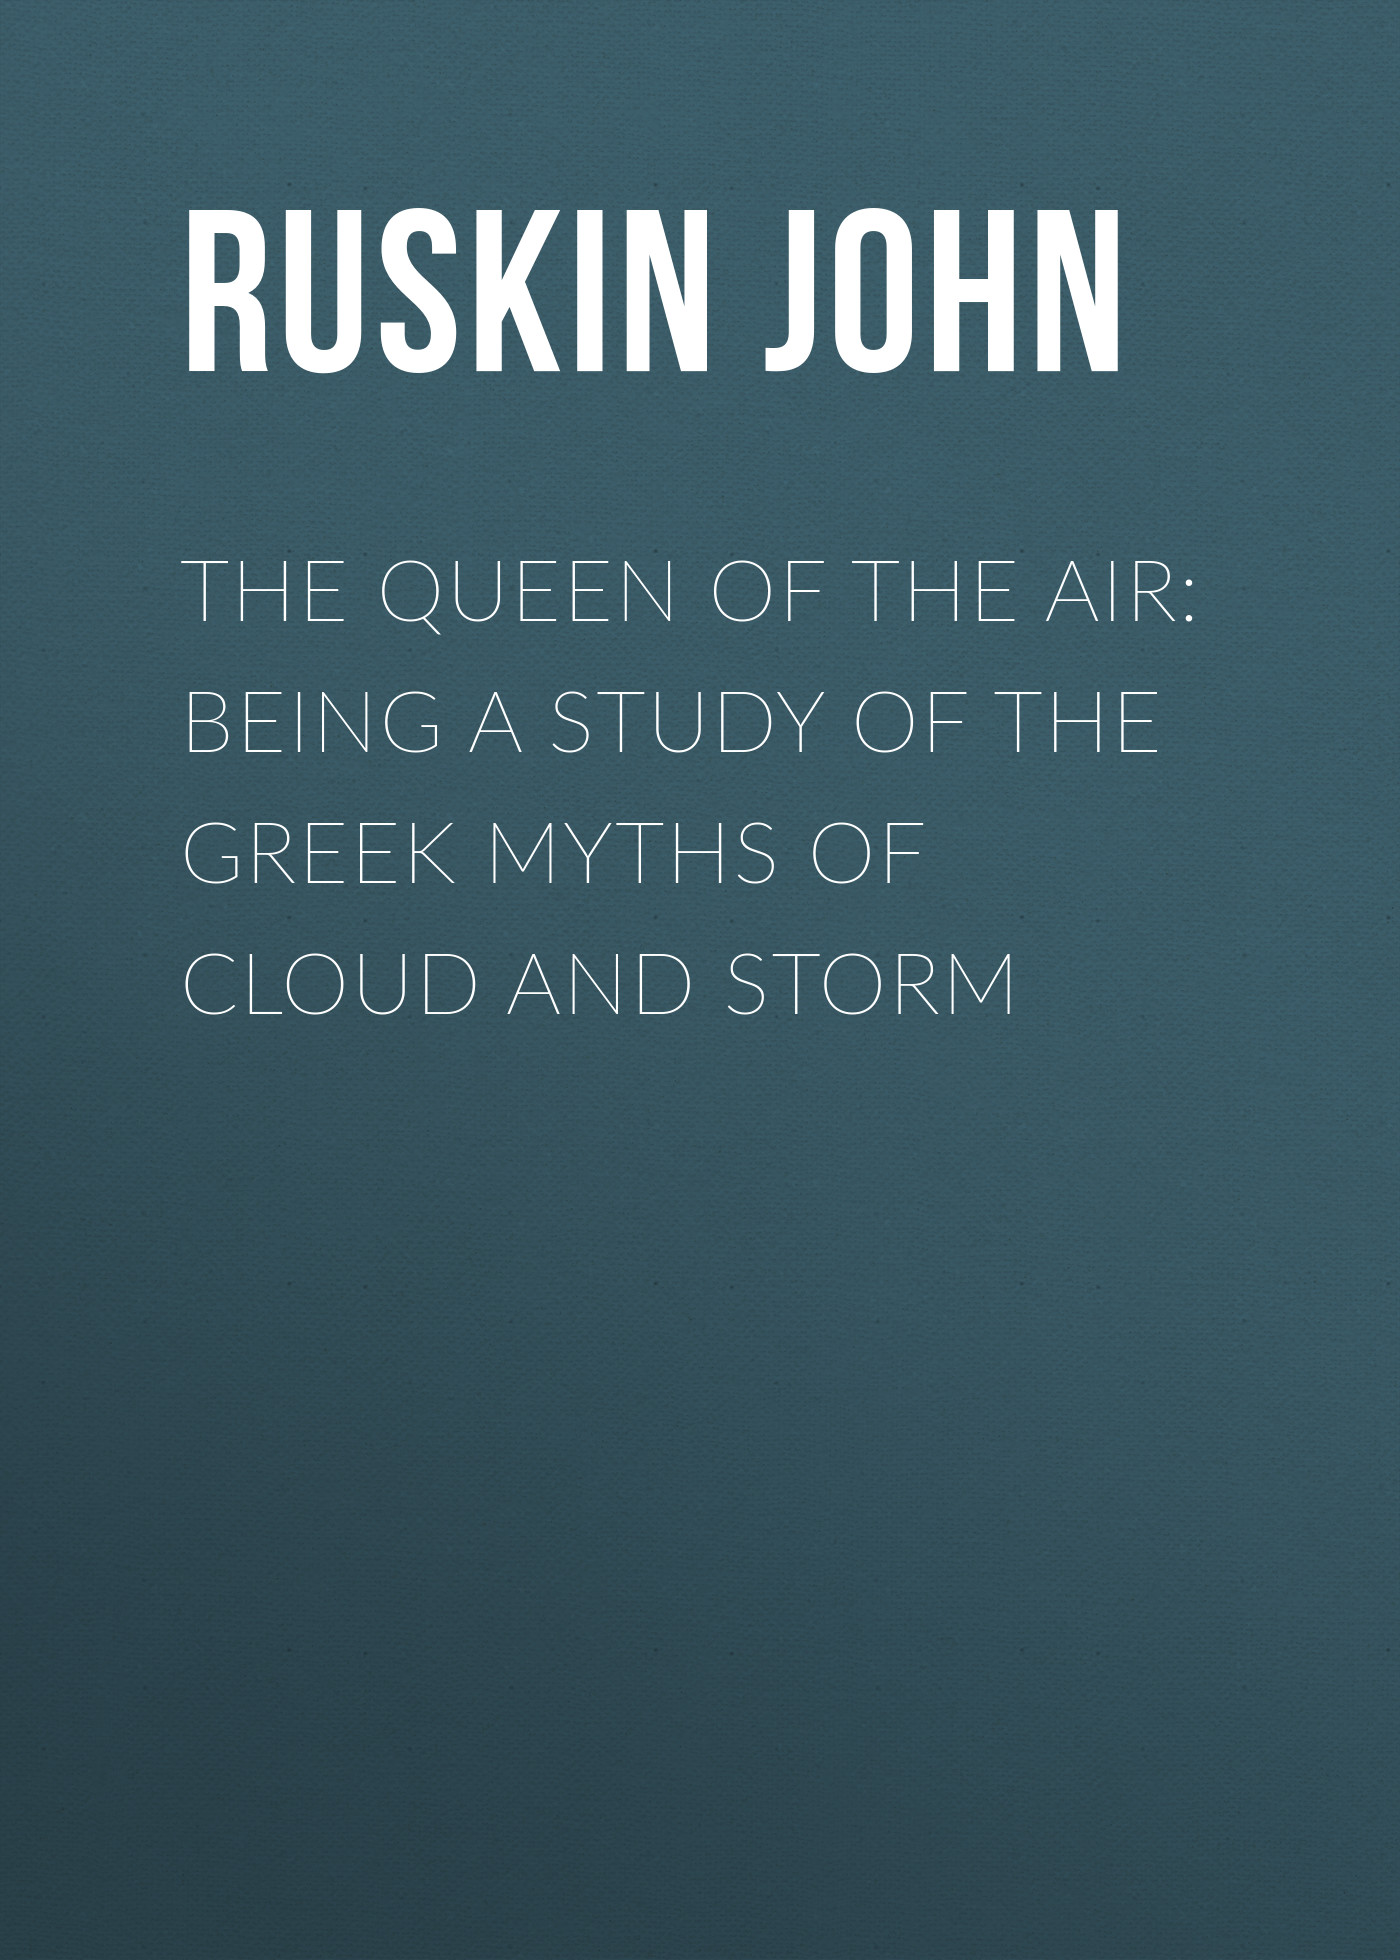 Ruskin John The Queen of the Air: Being a Study of the Greek Myths of Cloud and Storm mono japan a storm of light usa